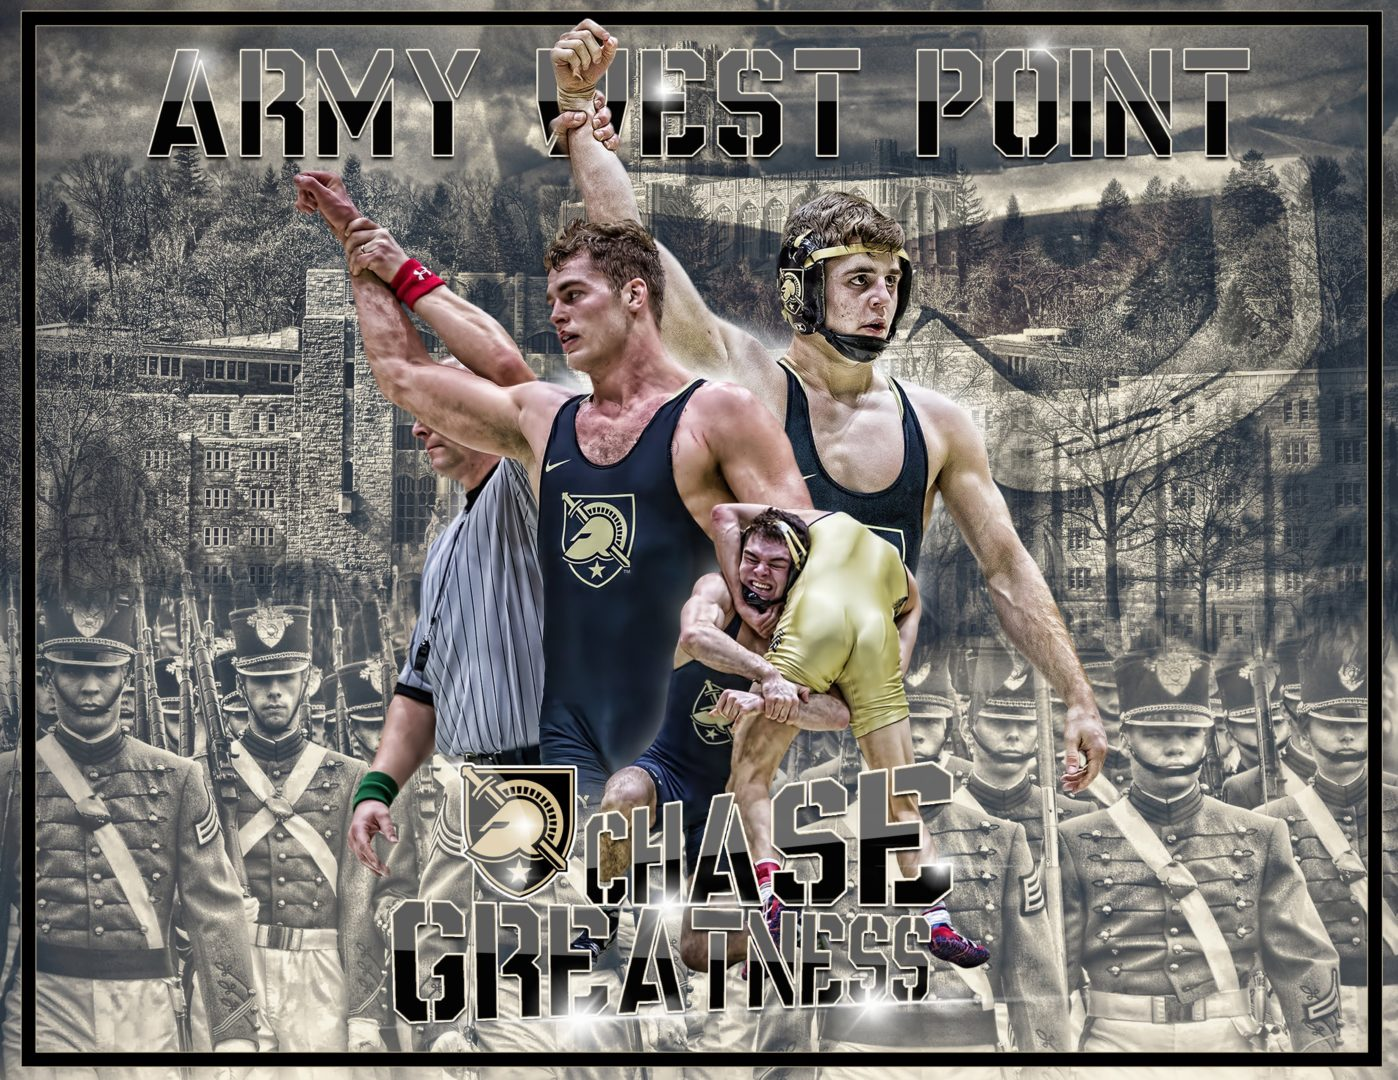 West Point Wrestling